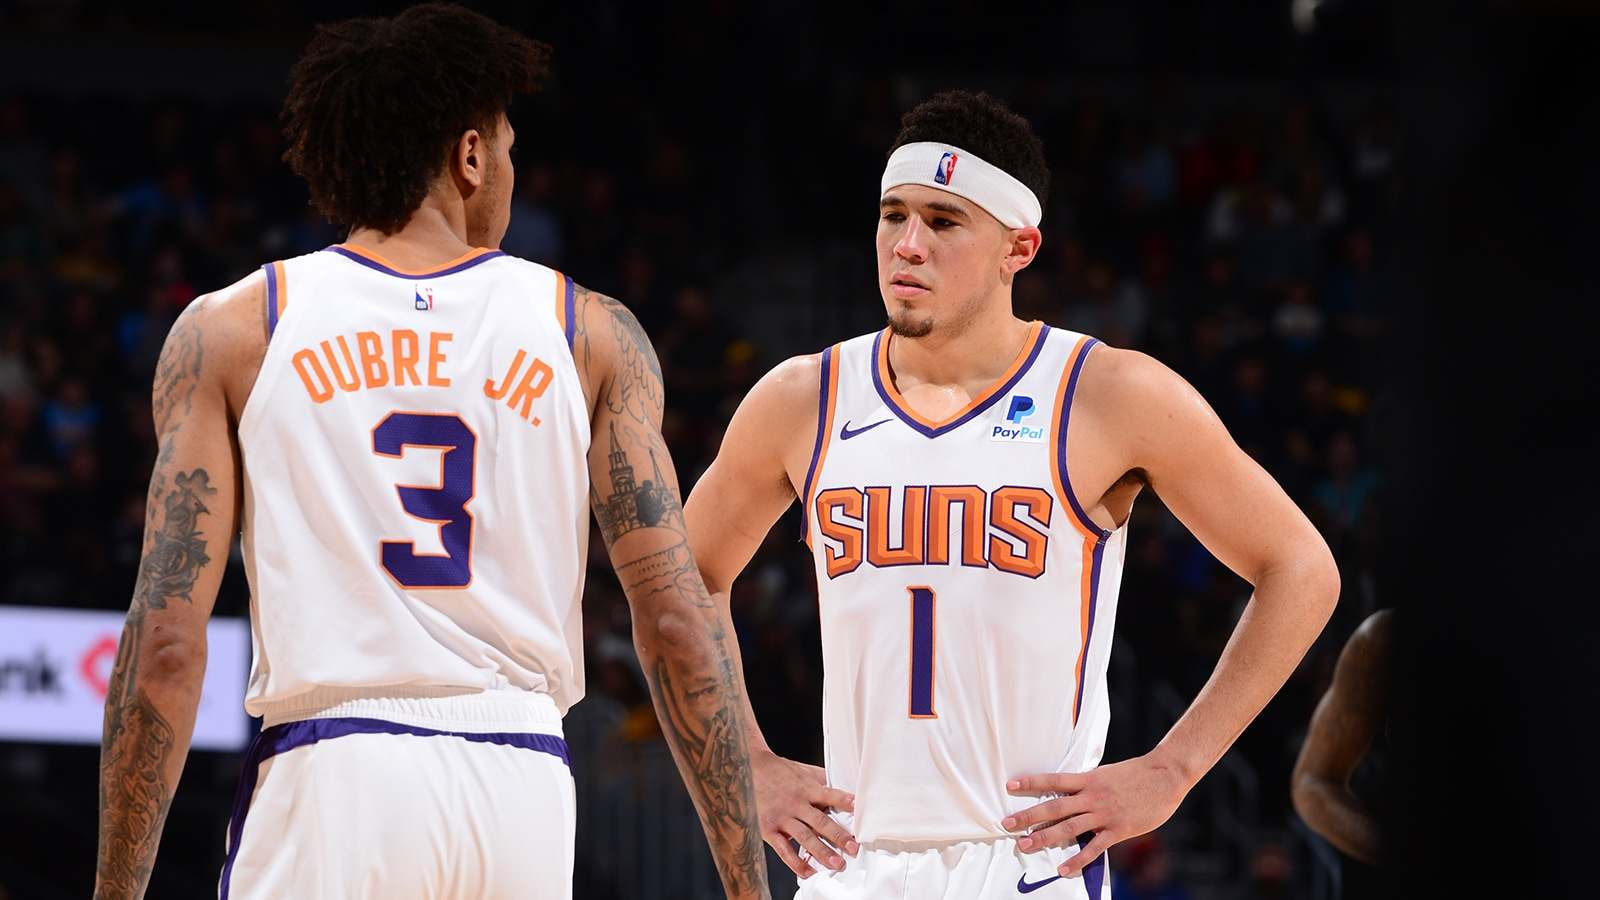 Devin Booker and Kelly Oubre